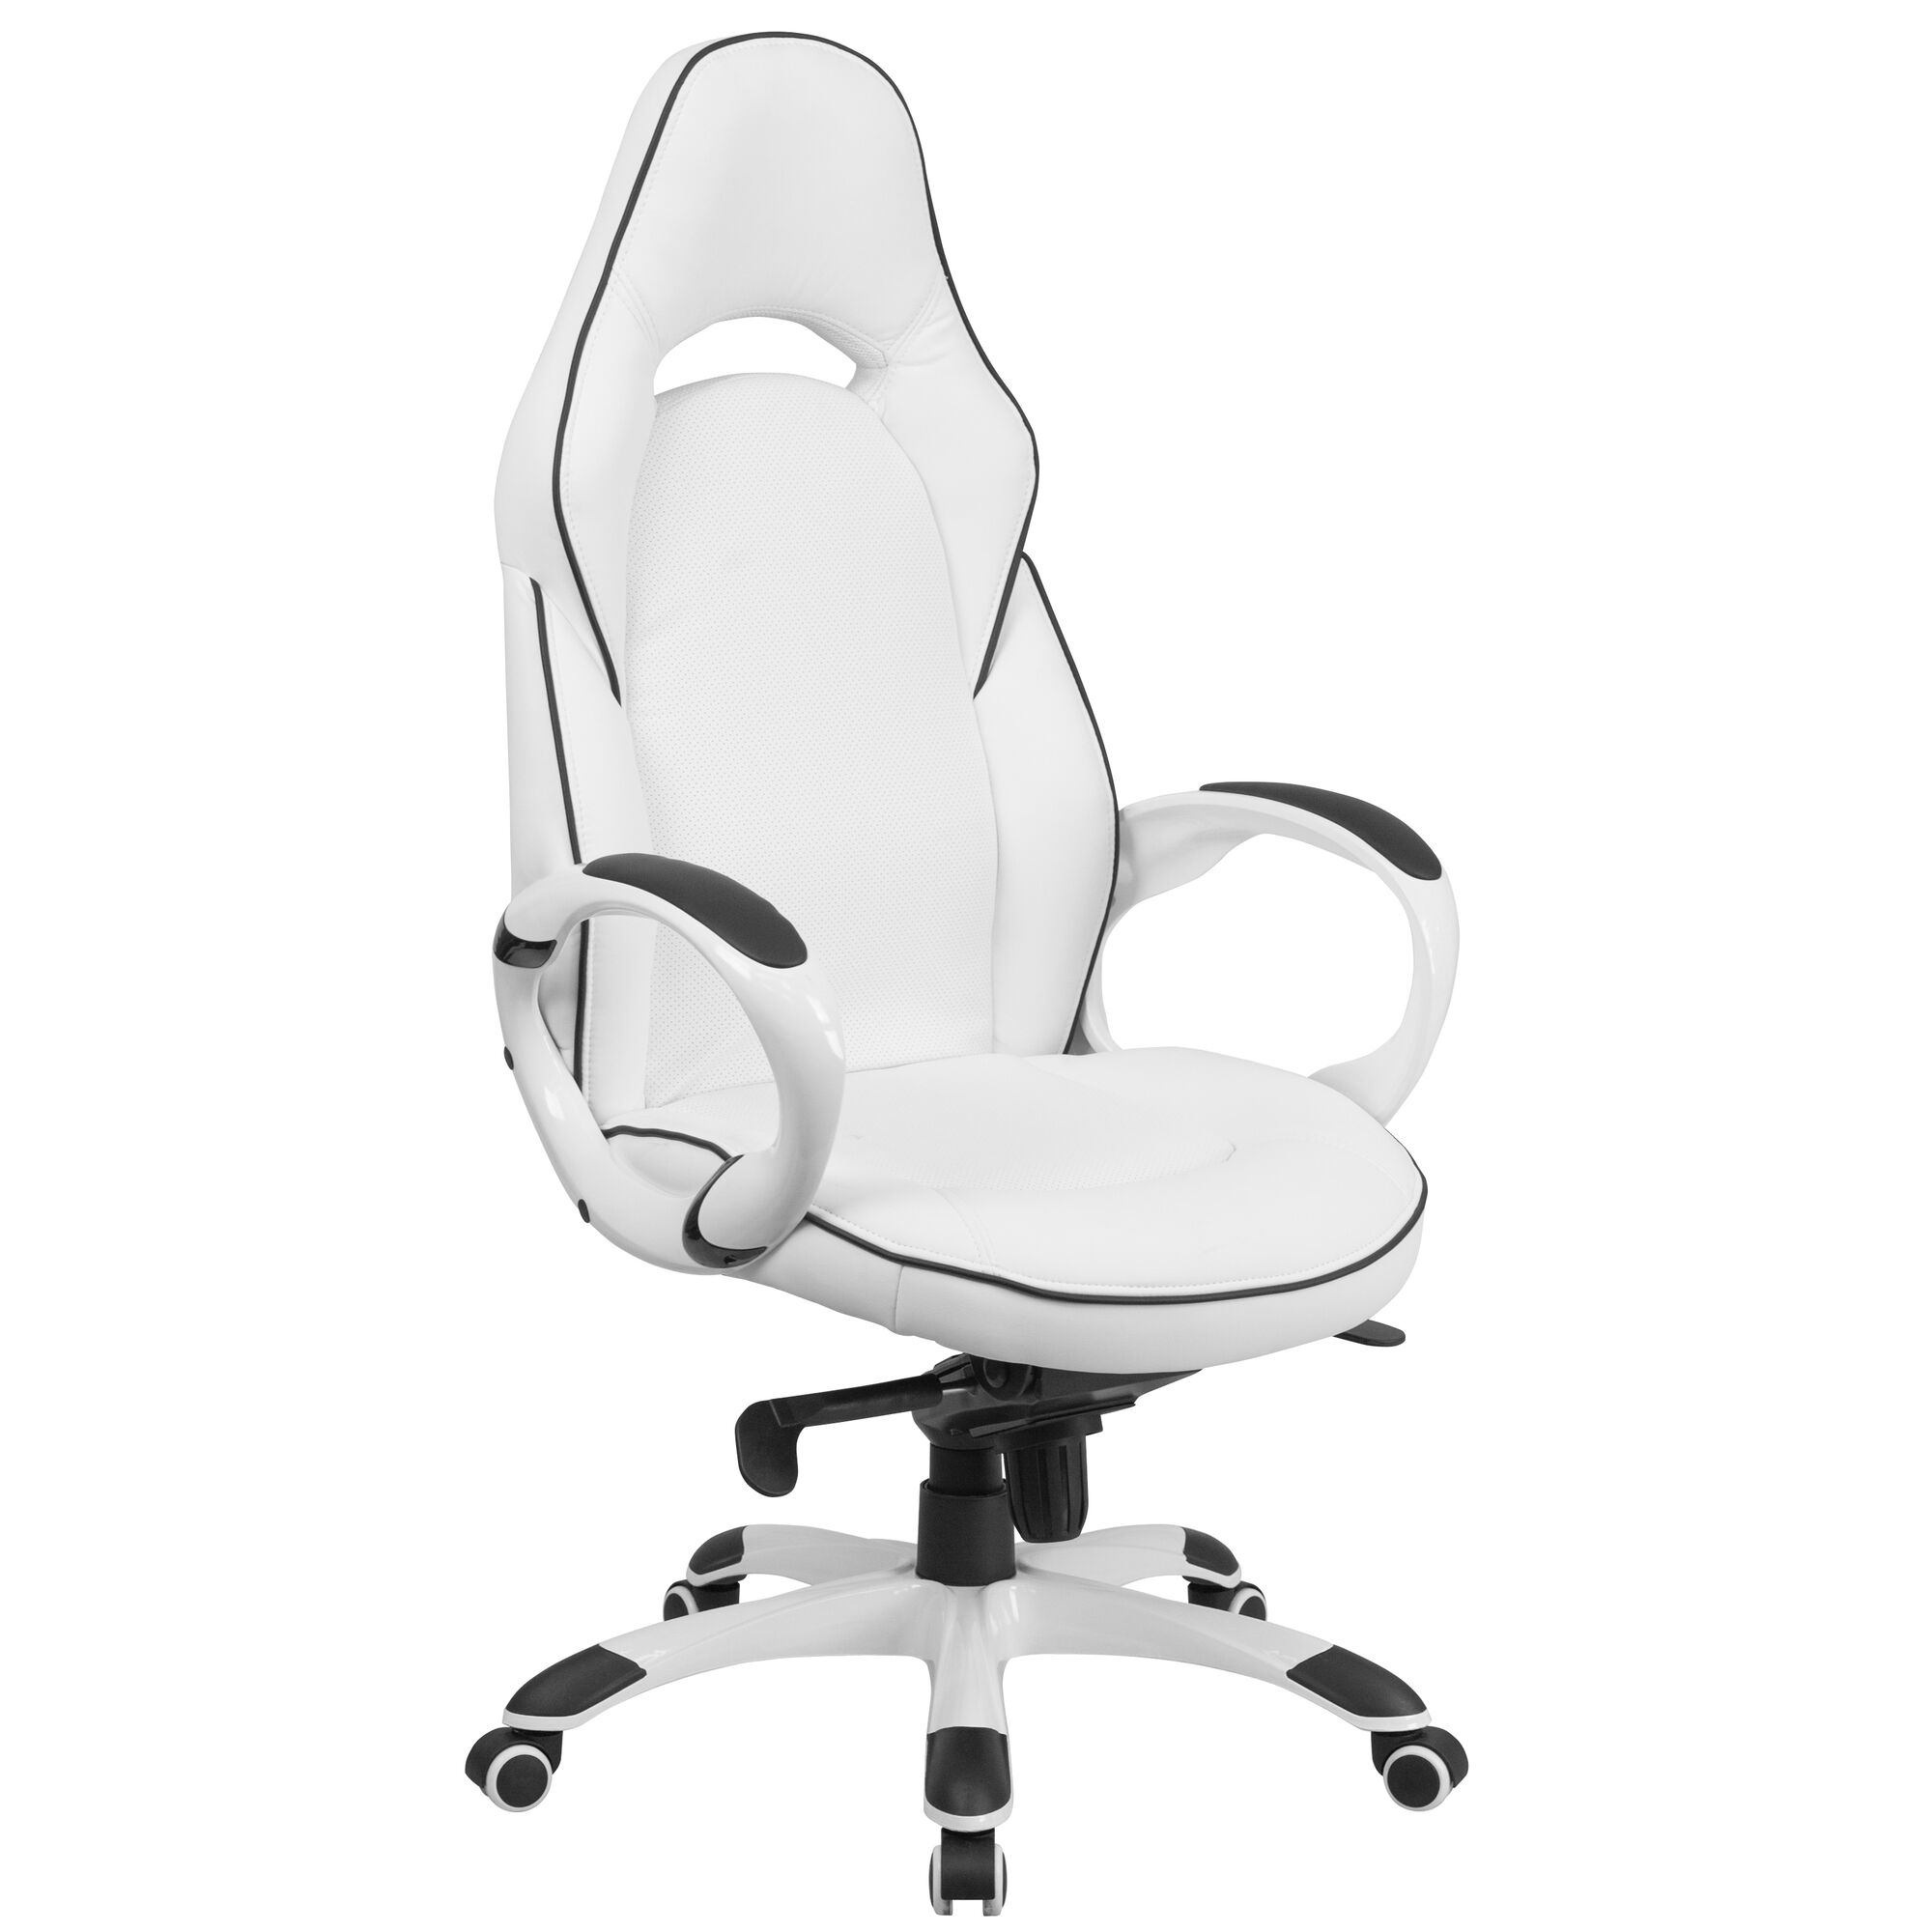 Superb High Back White Vinyl Executive Swivel Office Chair With Black Trim And Arms Onthecornerstone Fun Painted Chair Ideas Images Onthecornerstoneorg